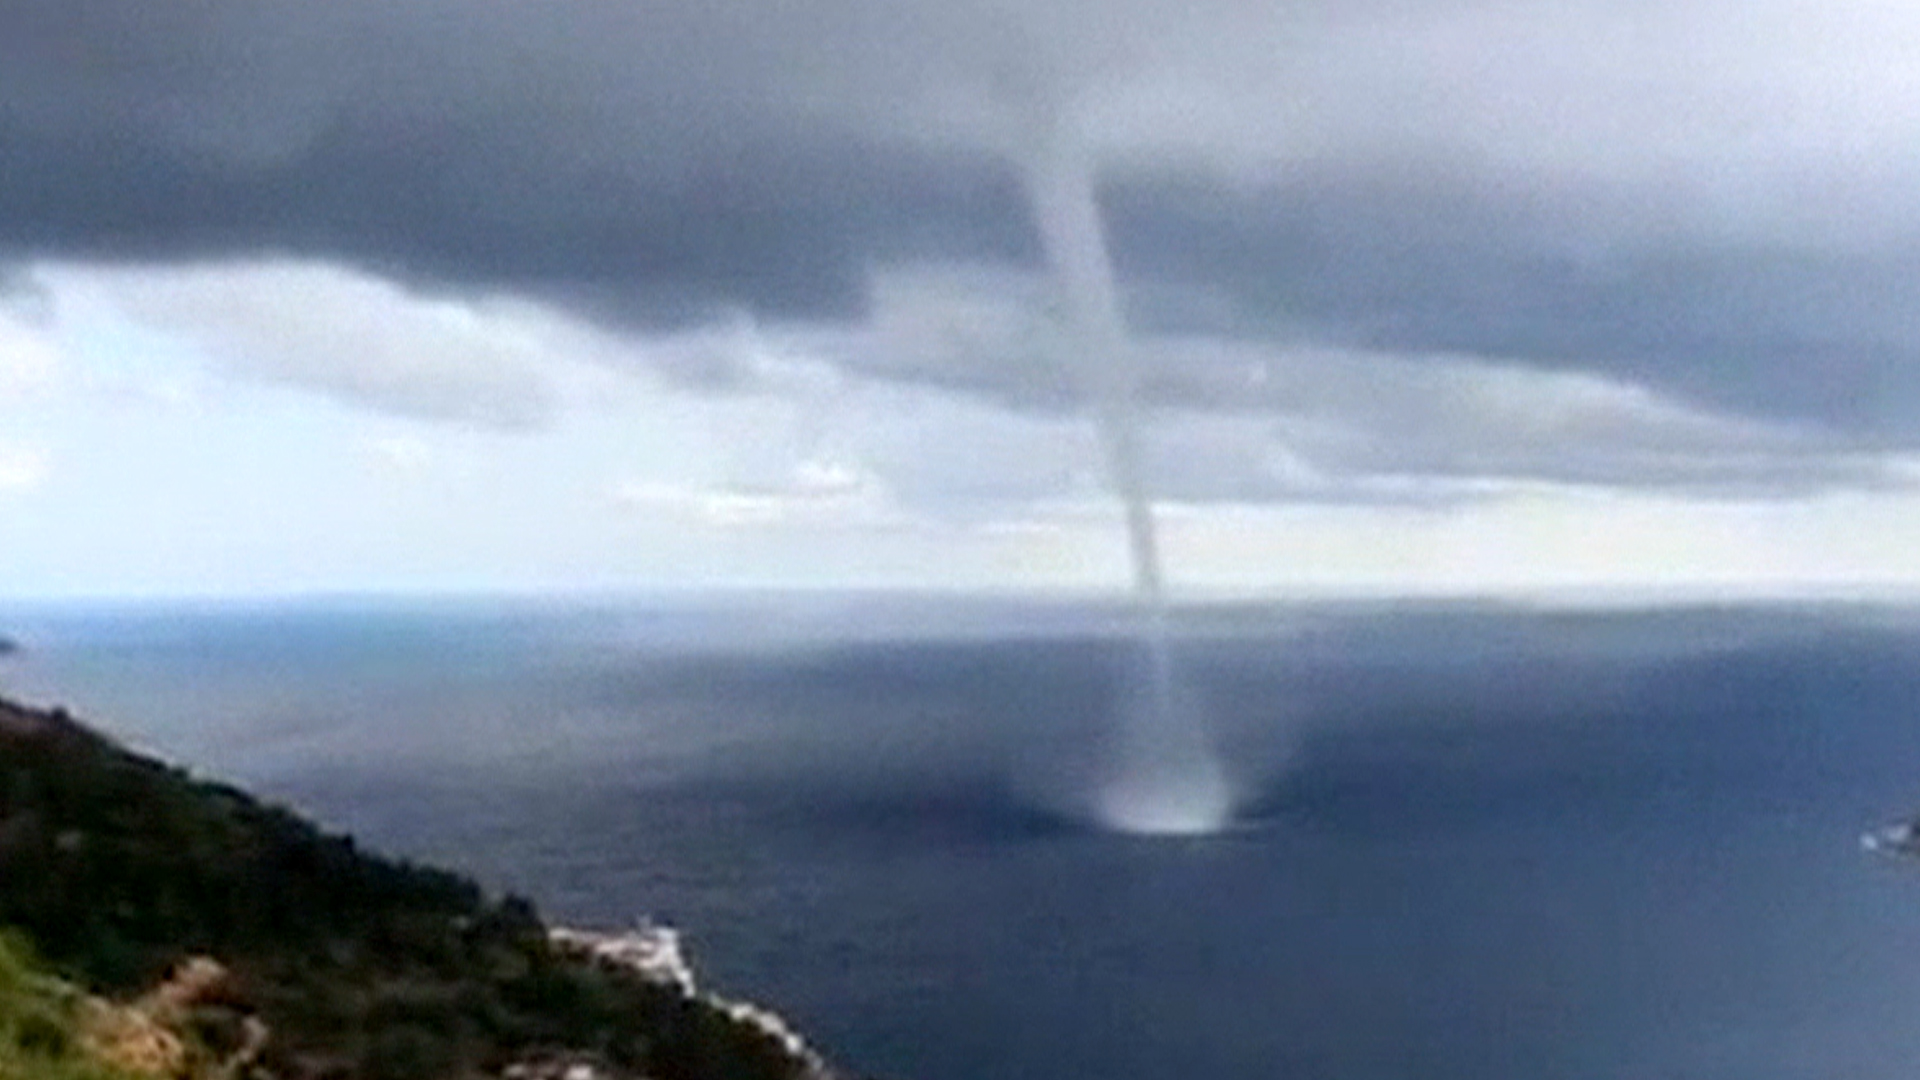 raw waterspout reported in croatia